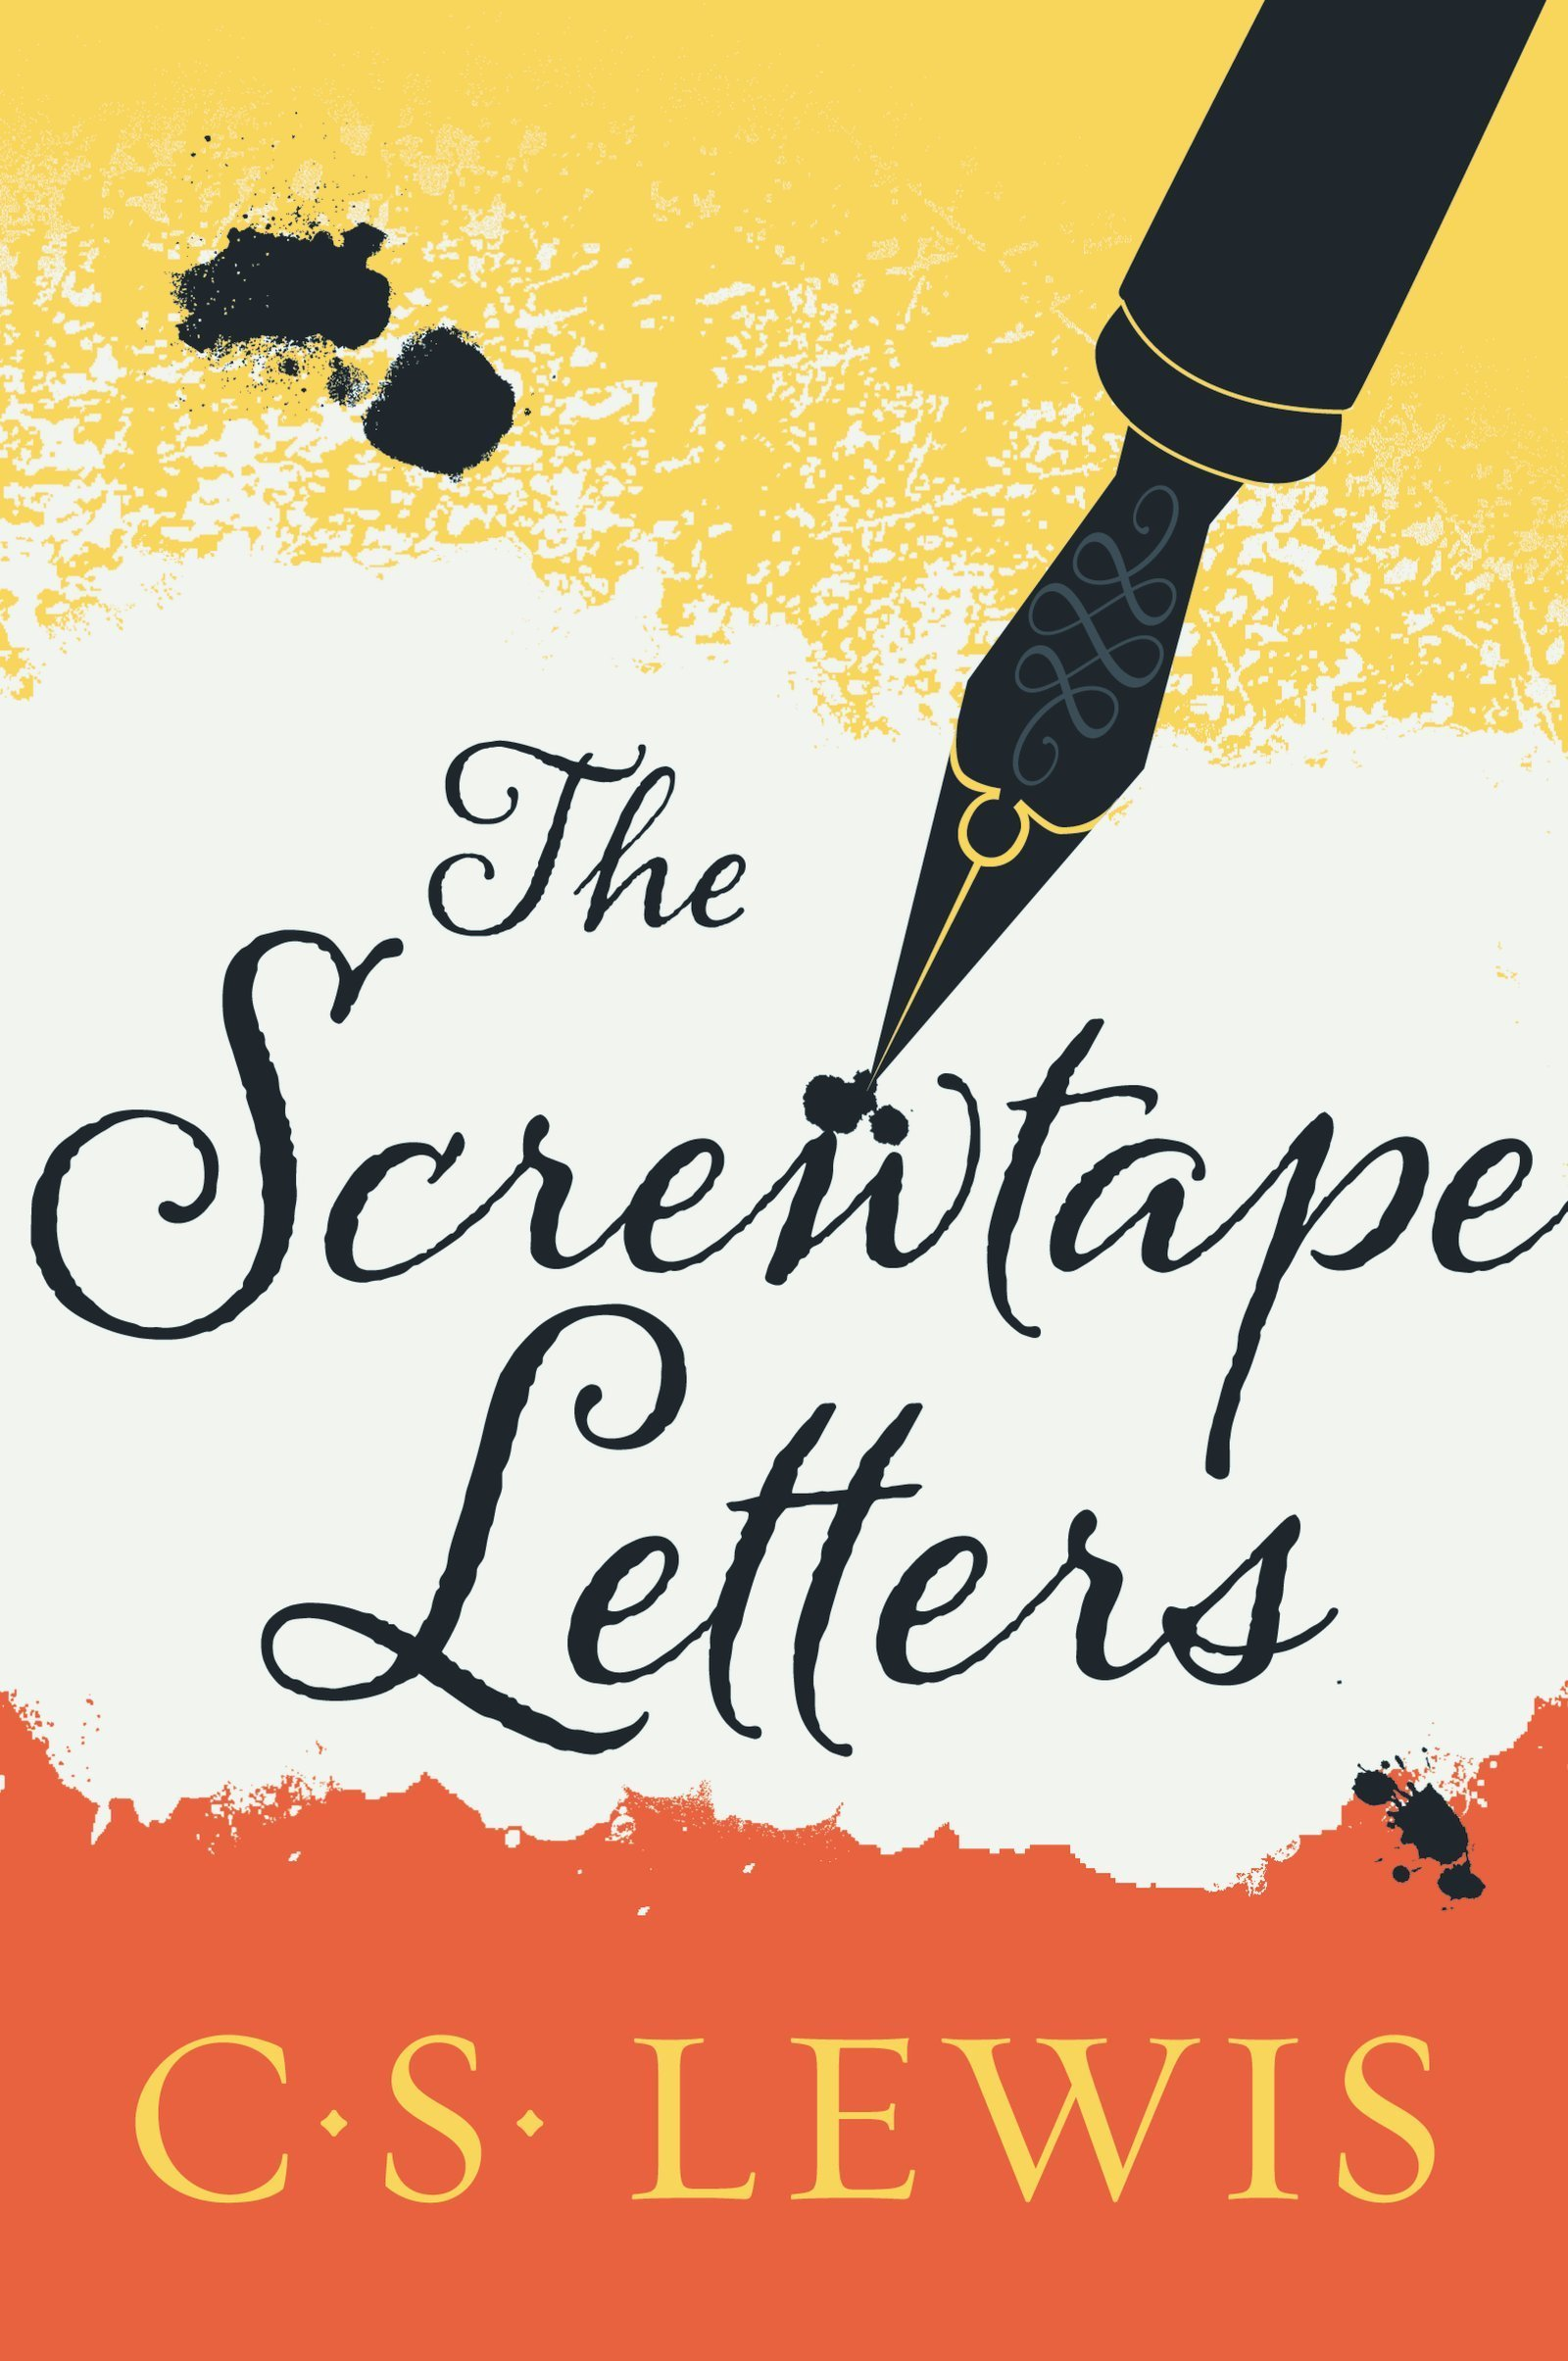 "The Screwtape Letters    The Screwtape Letters  by C.S.  Lewis is a classic masterpiece of religious satire that entertains readers with its sly and ironic portrayal of human life and foibles from the vantage point of Screwtape, a highly placed assistant to ""Our Father Below."""